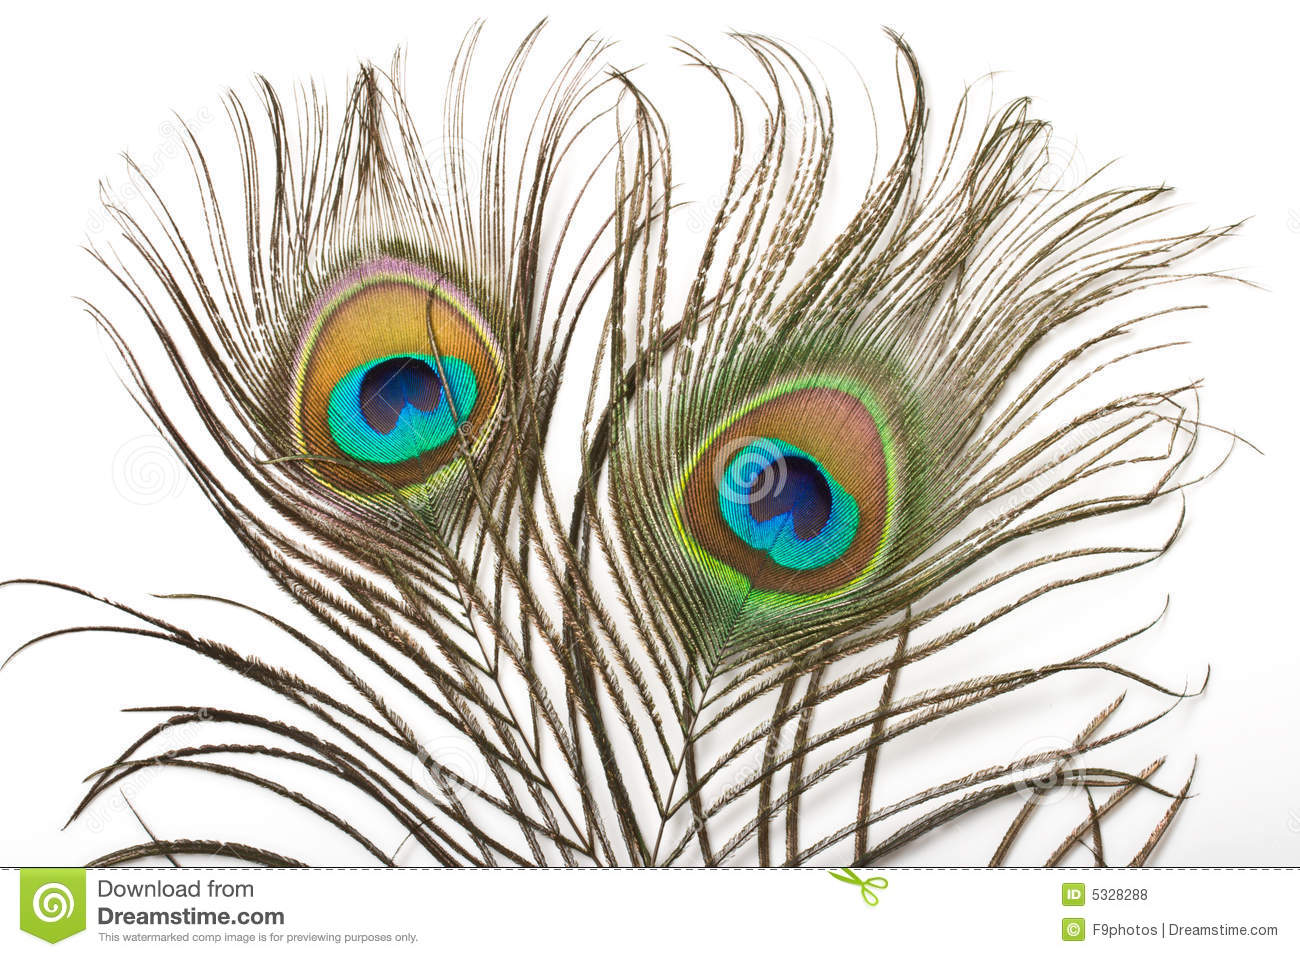 Peacock Feather Close Up Royalty Free Stock Photos - Image: 5328288